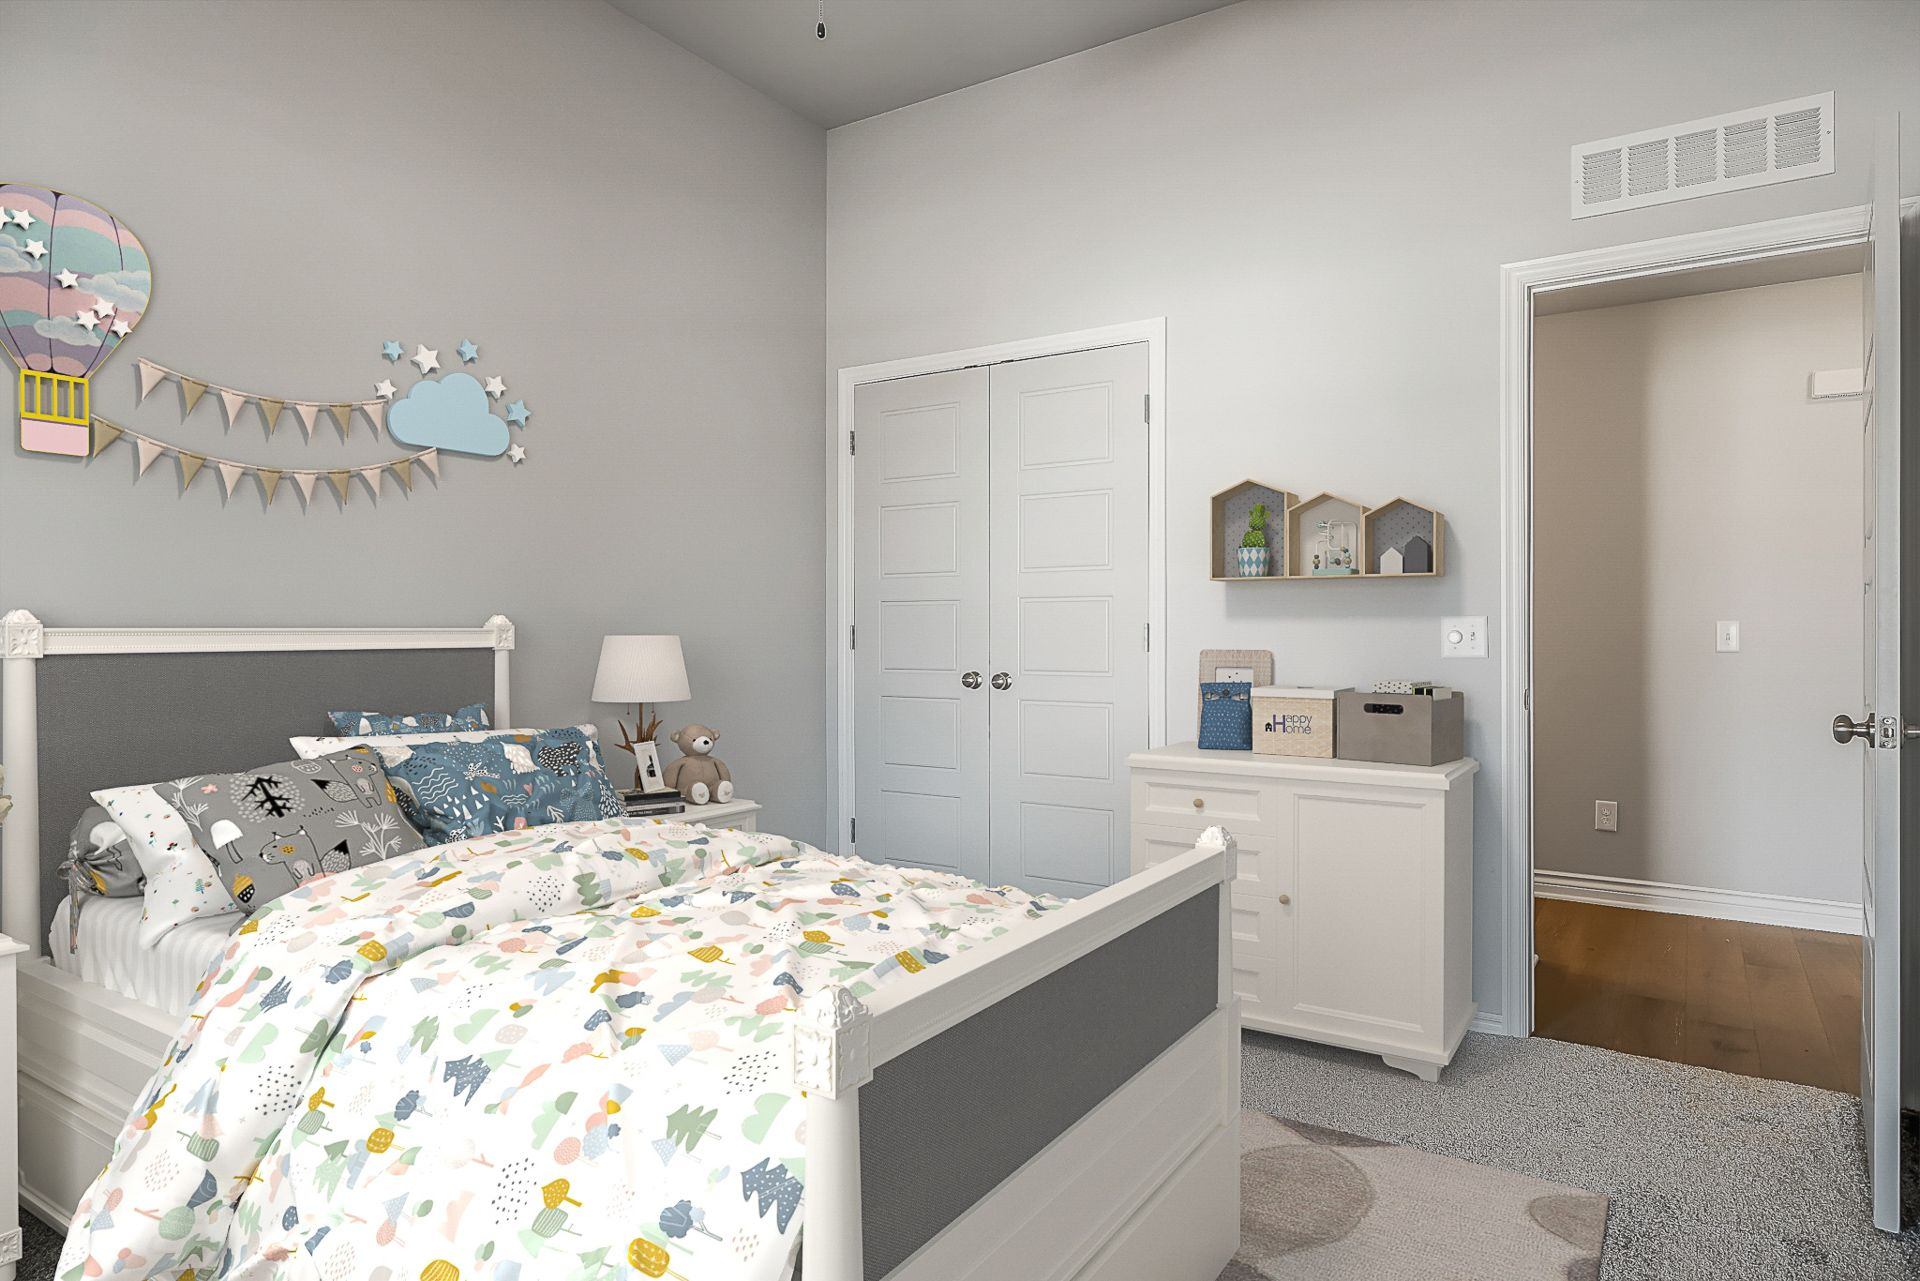 Bedroom featured in the Pendleton By Ideal Homes in Oklahoma City, OK